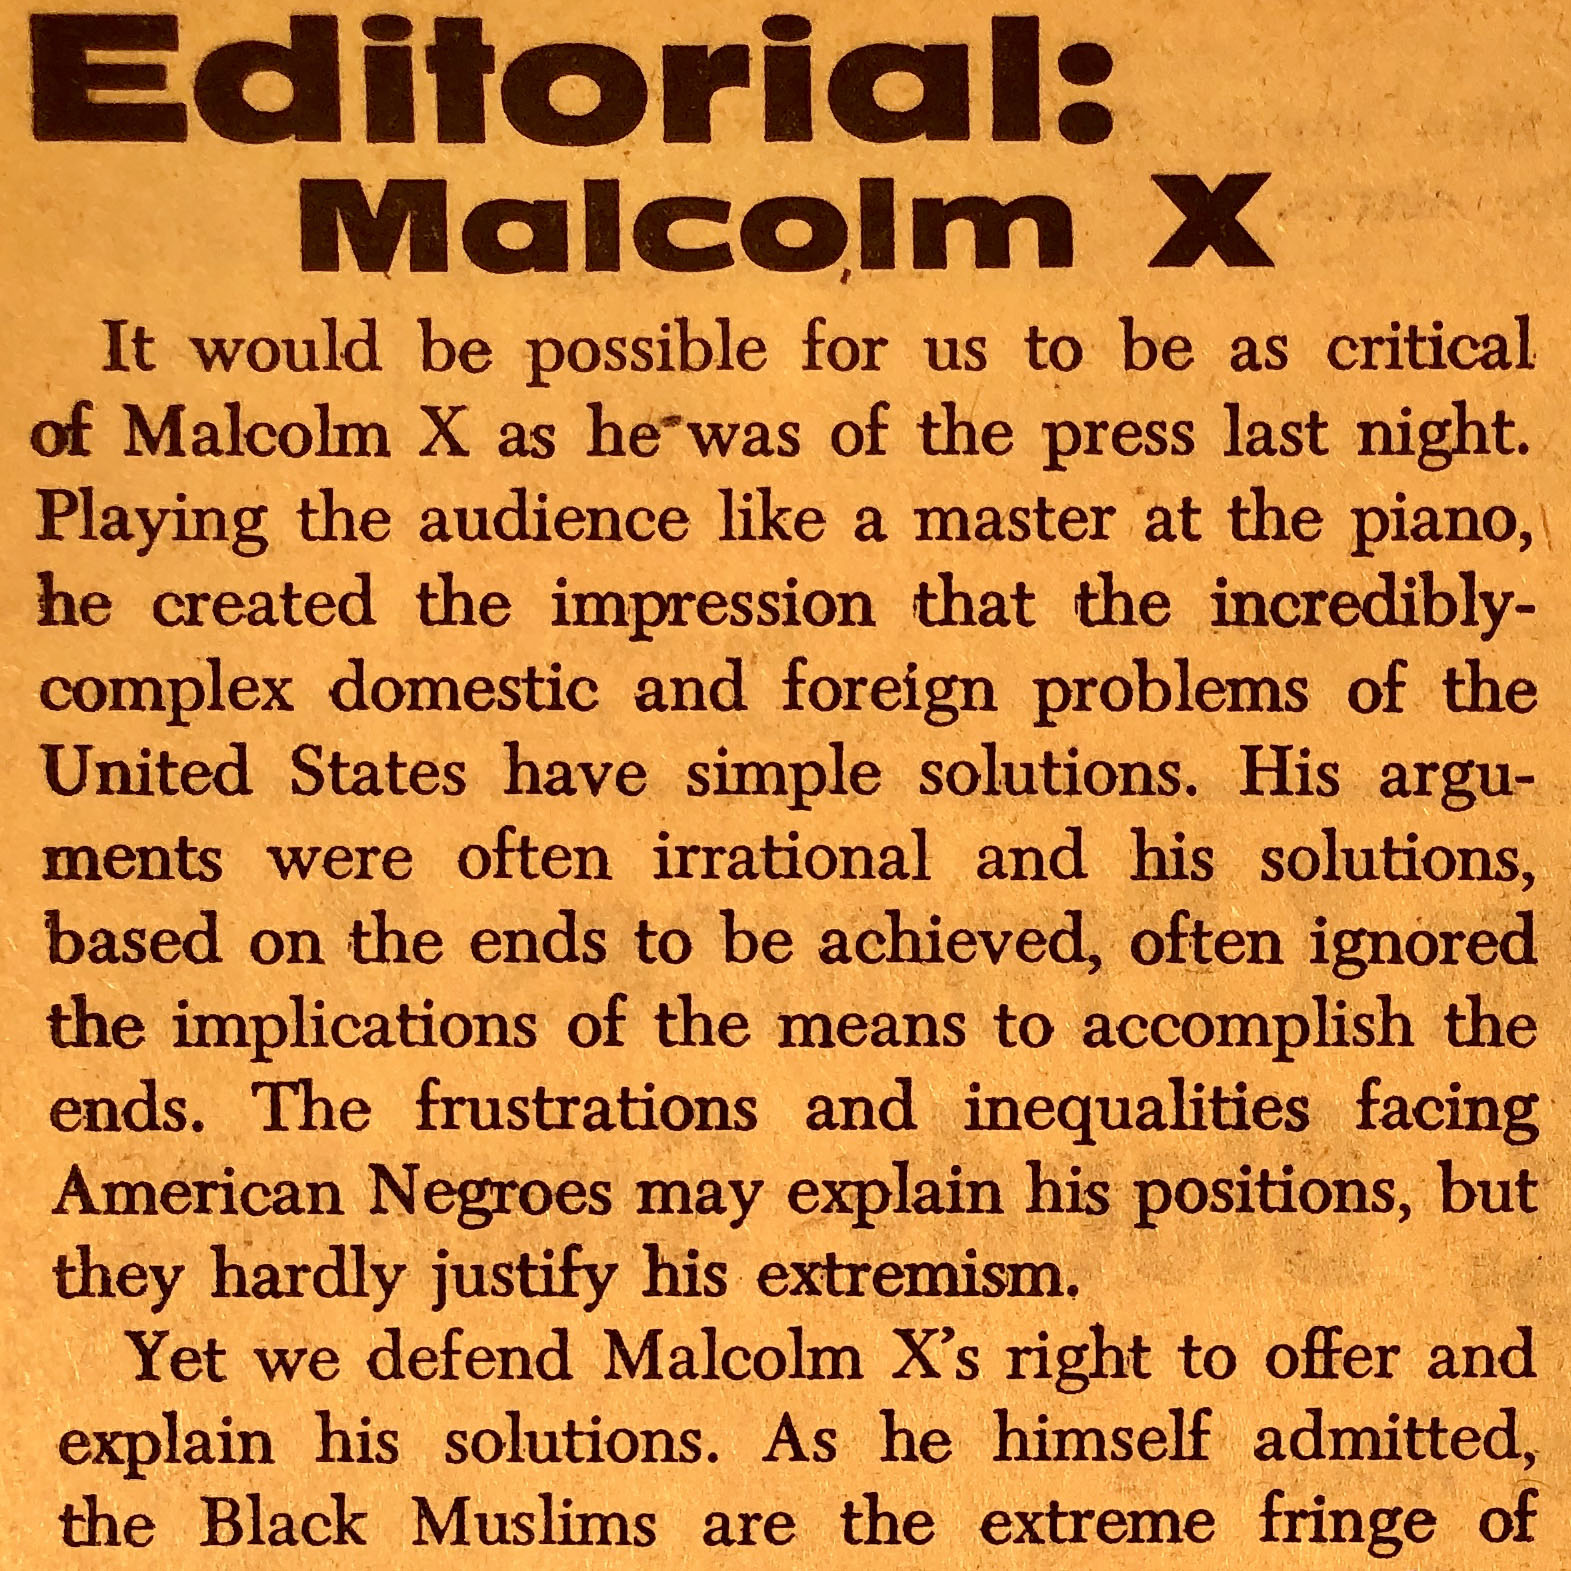 """This response to Malcolm X's visit to Dartmouth critiques the """"extremism"""" of Malcolm X and the Black Muslims as fringe participants in the Civil Rights Movement. While the author defends Malcolm X's right to put forth his arguments, they choose to praise him and his followers for liberalizing the movement, thereby normalizing """"moderate"""" groups with achievable goals, such as the NAACP, CORE, and Urban League."""